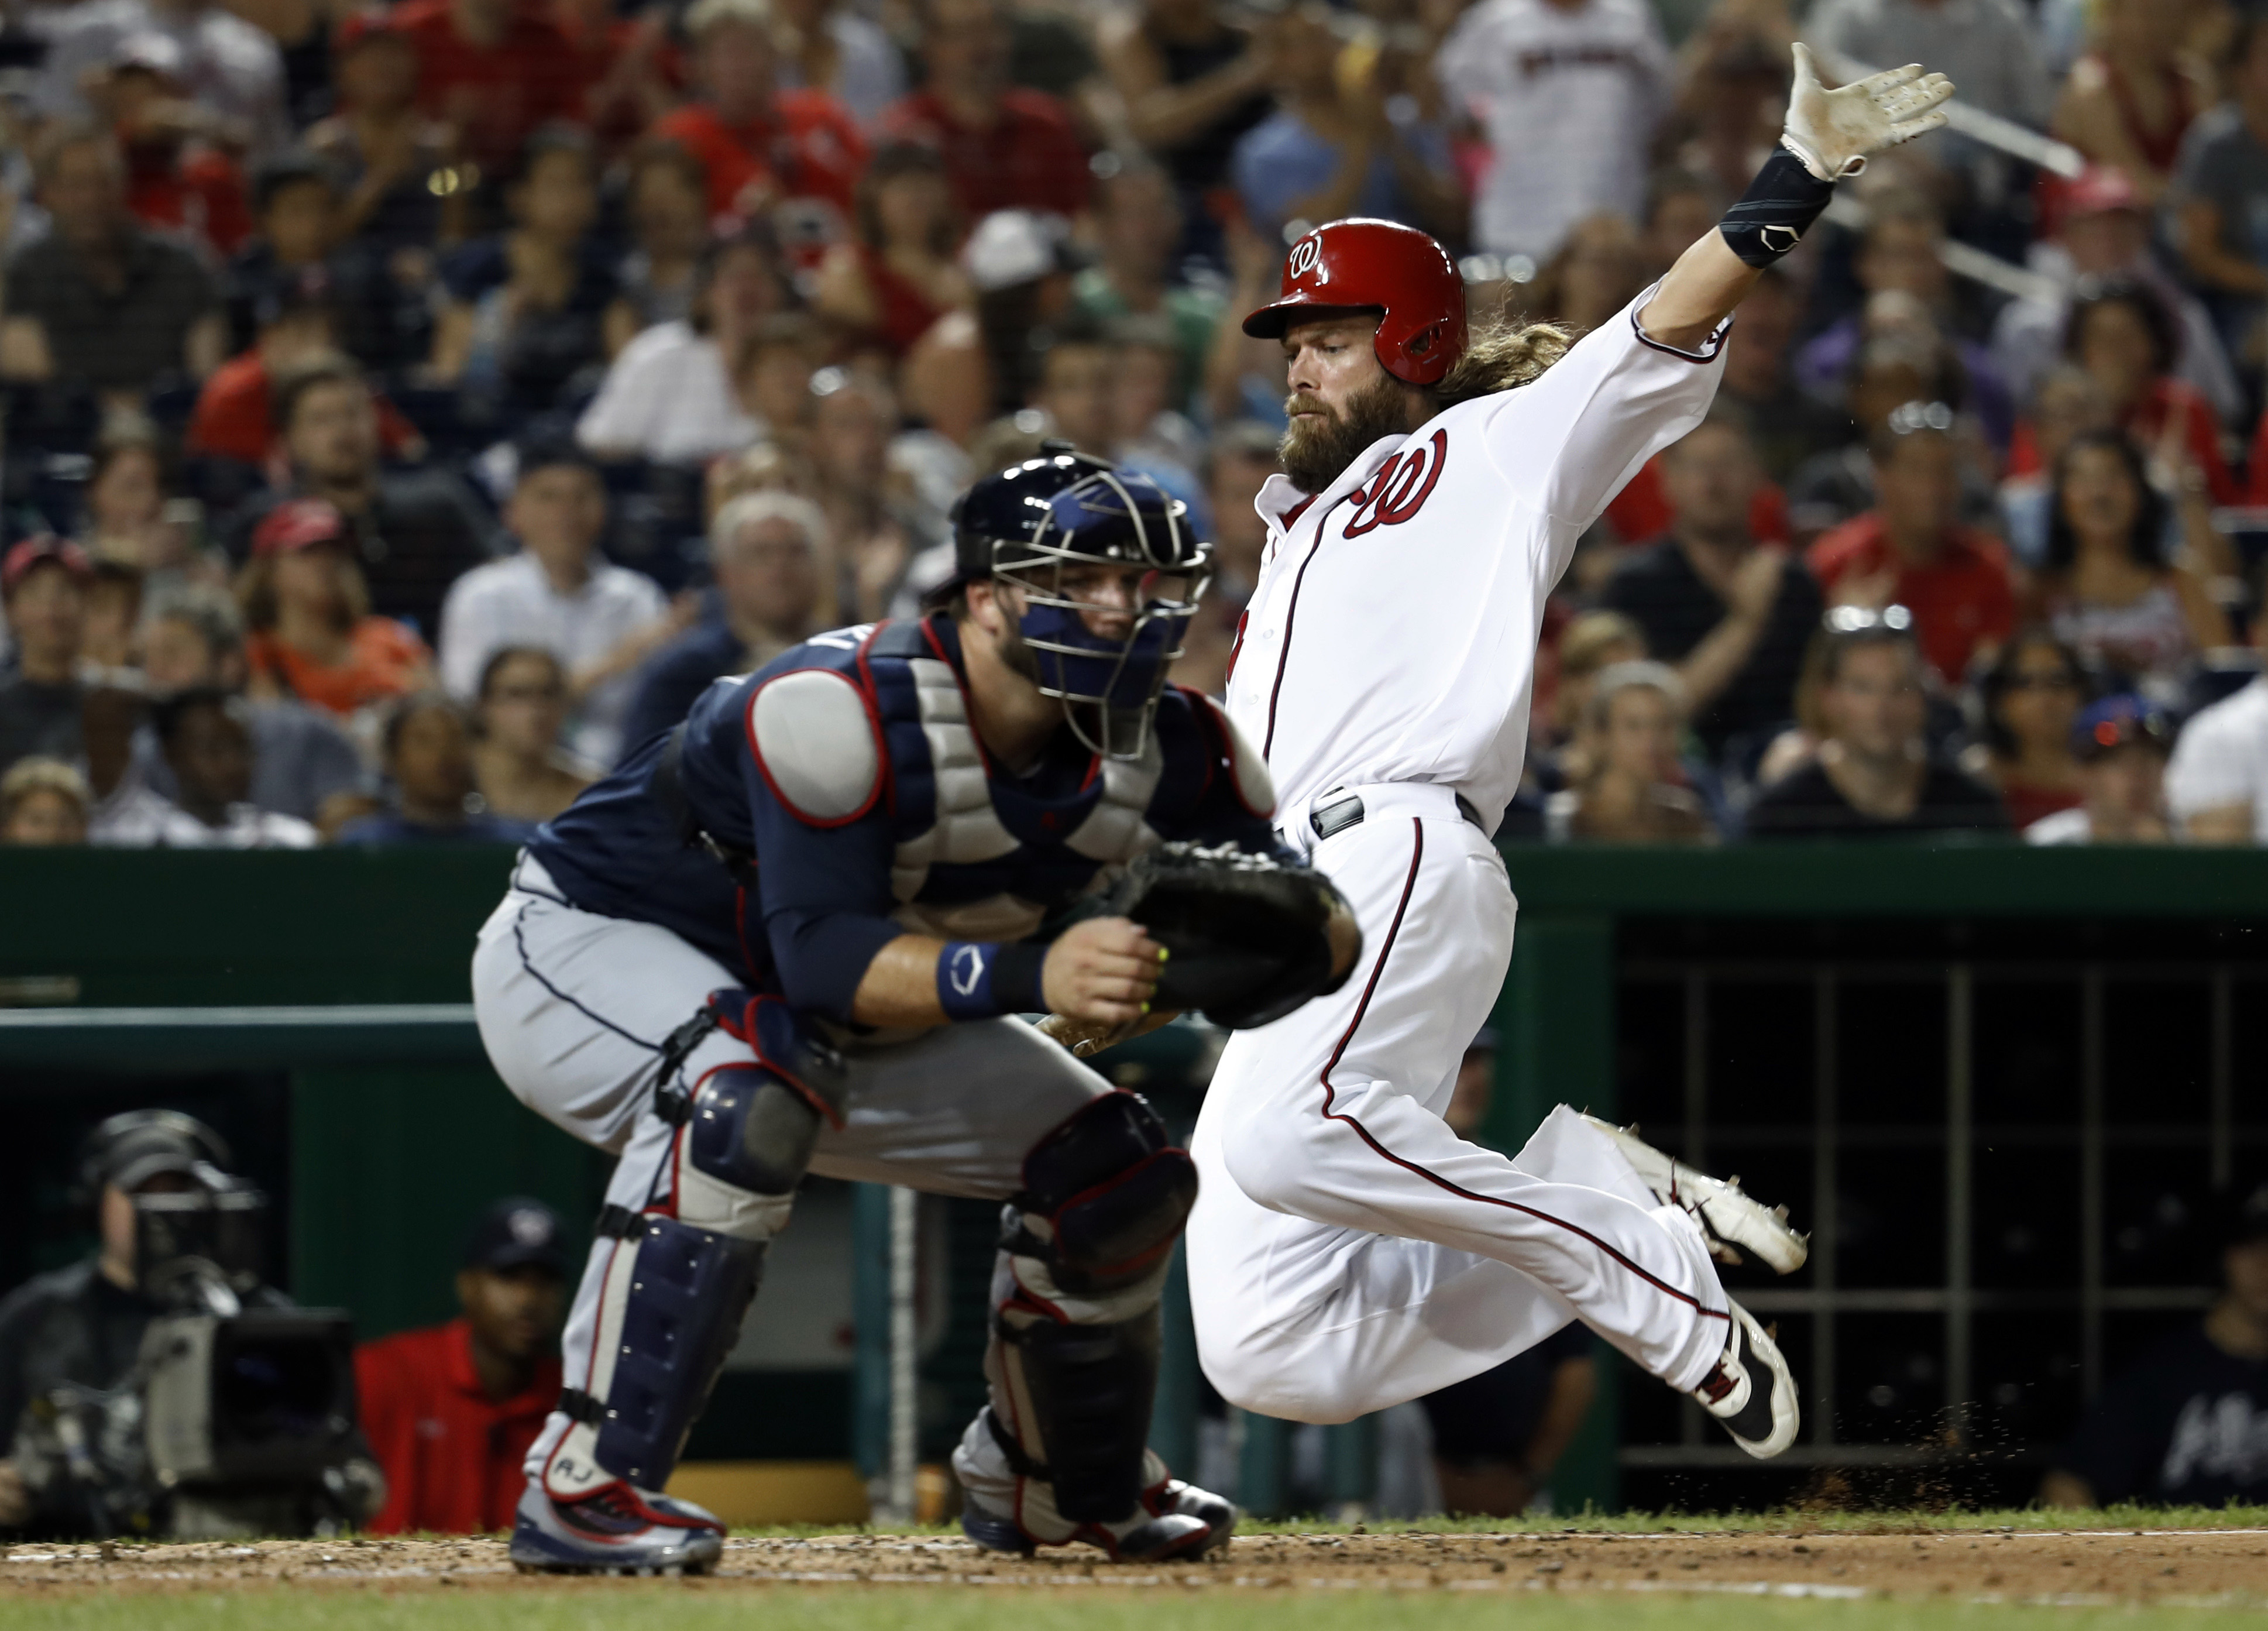 Washington Nationals' Jayson Werth, right, leaps to slide into home to score off a single hit by teammate Danny Espinosa as Atlanta Braves catcher A.J. Pierzynski, left, waits for the throw during the sixth inning of a baseball game at Nationals Park, Sat